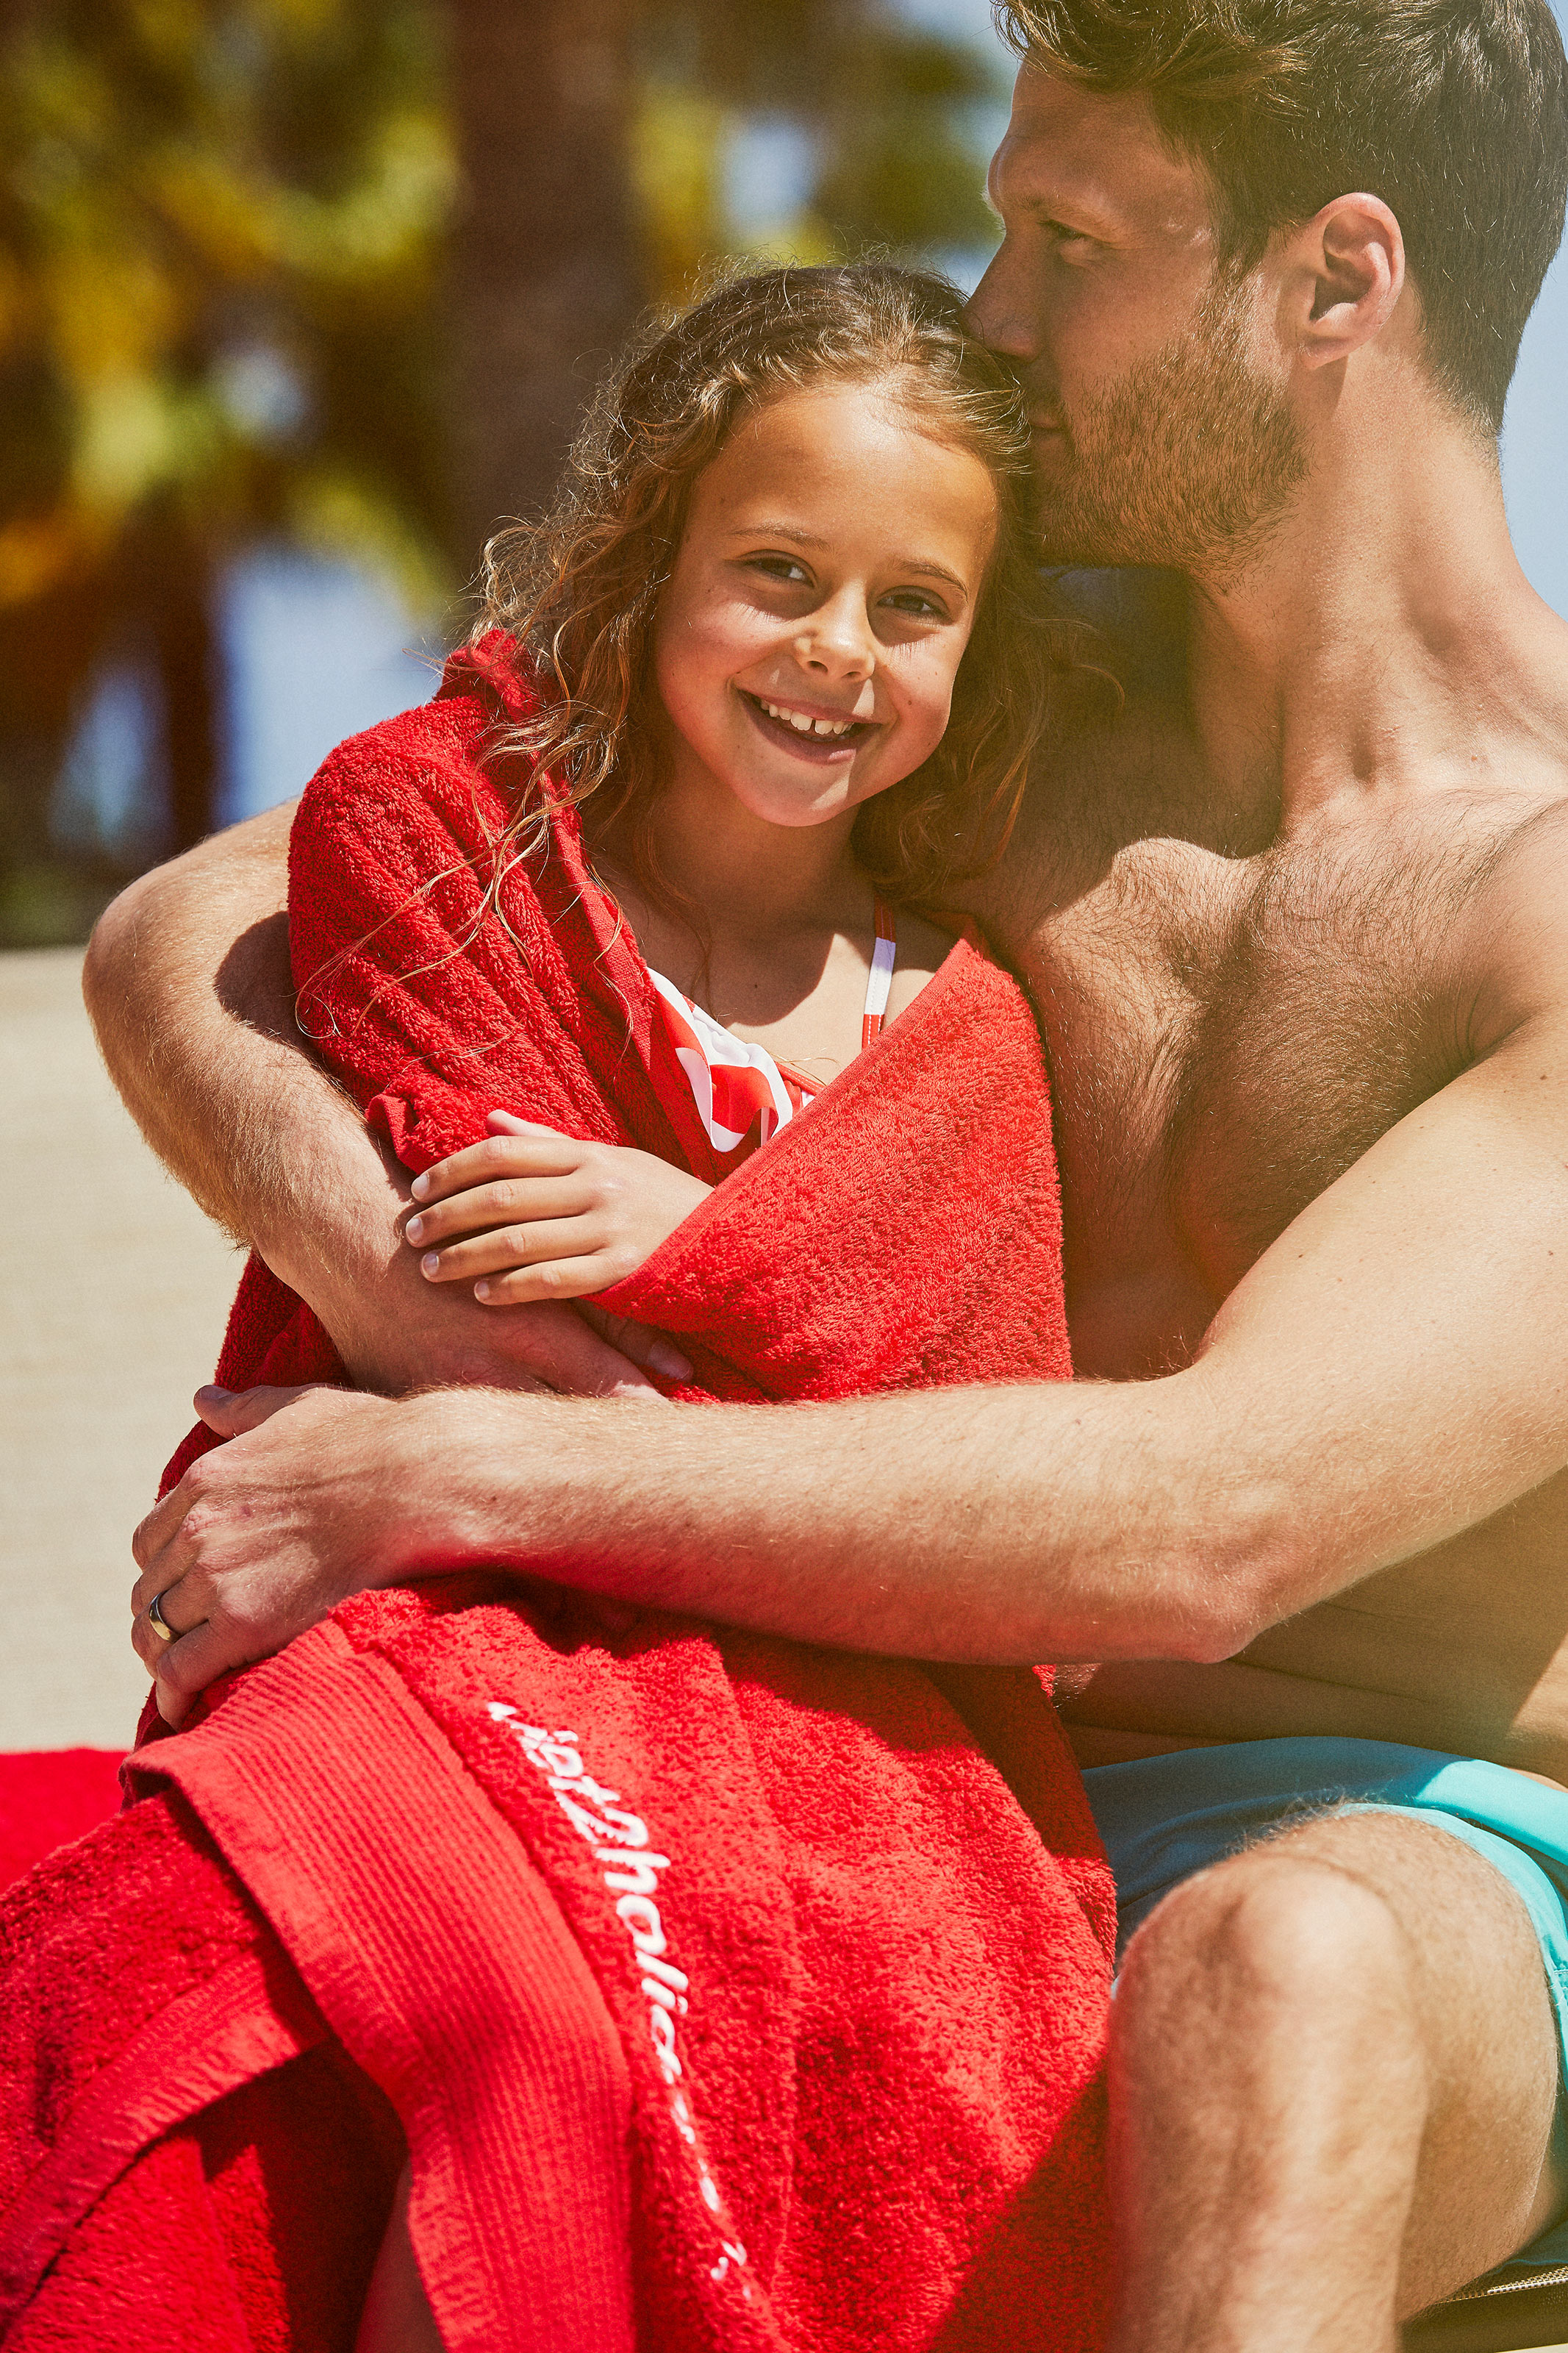 Dad and daughter on holiday